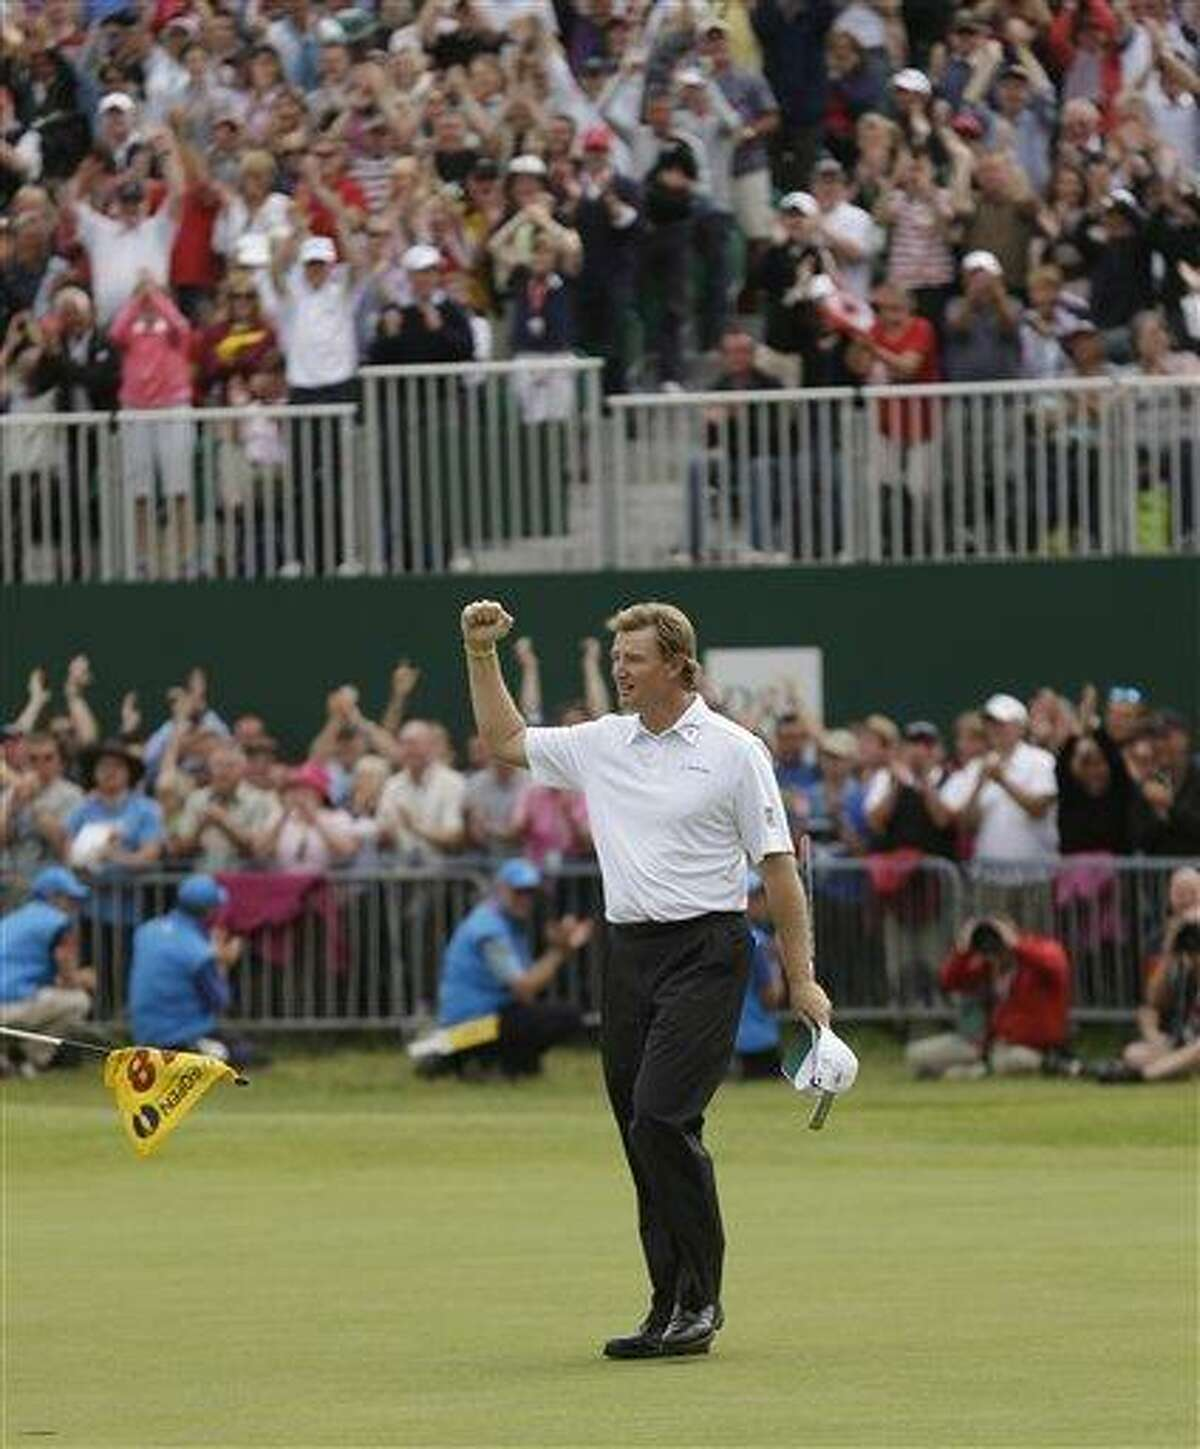 Ernie Els of South Africa reacts after putting on the 18 green at Royal Lytham & St Annes golf club during the final round Sunday of the British Open Golf Championship, in Lytham St Annes, England. Associated Press